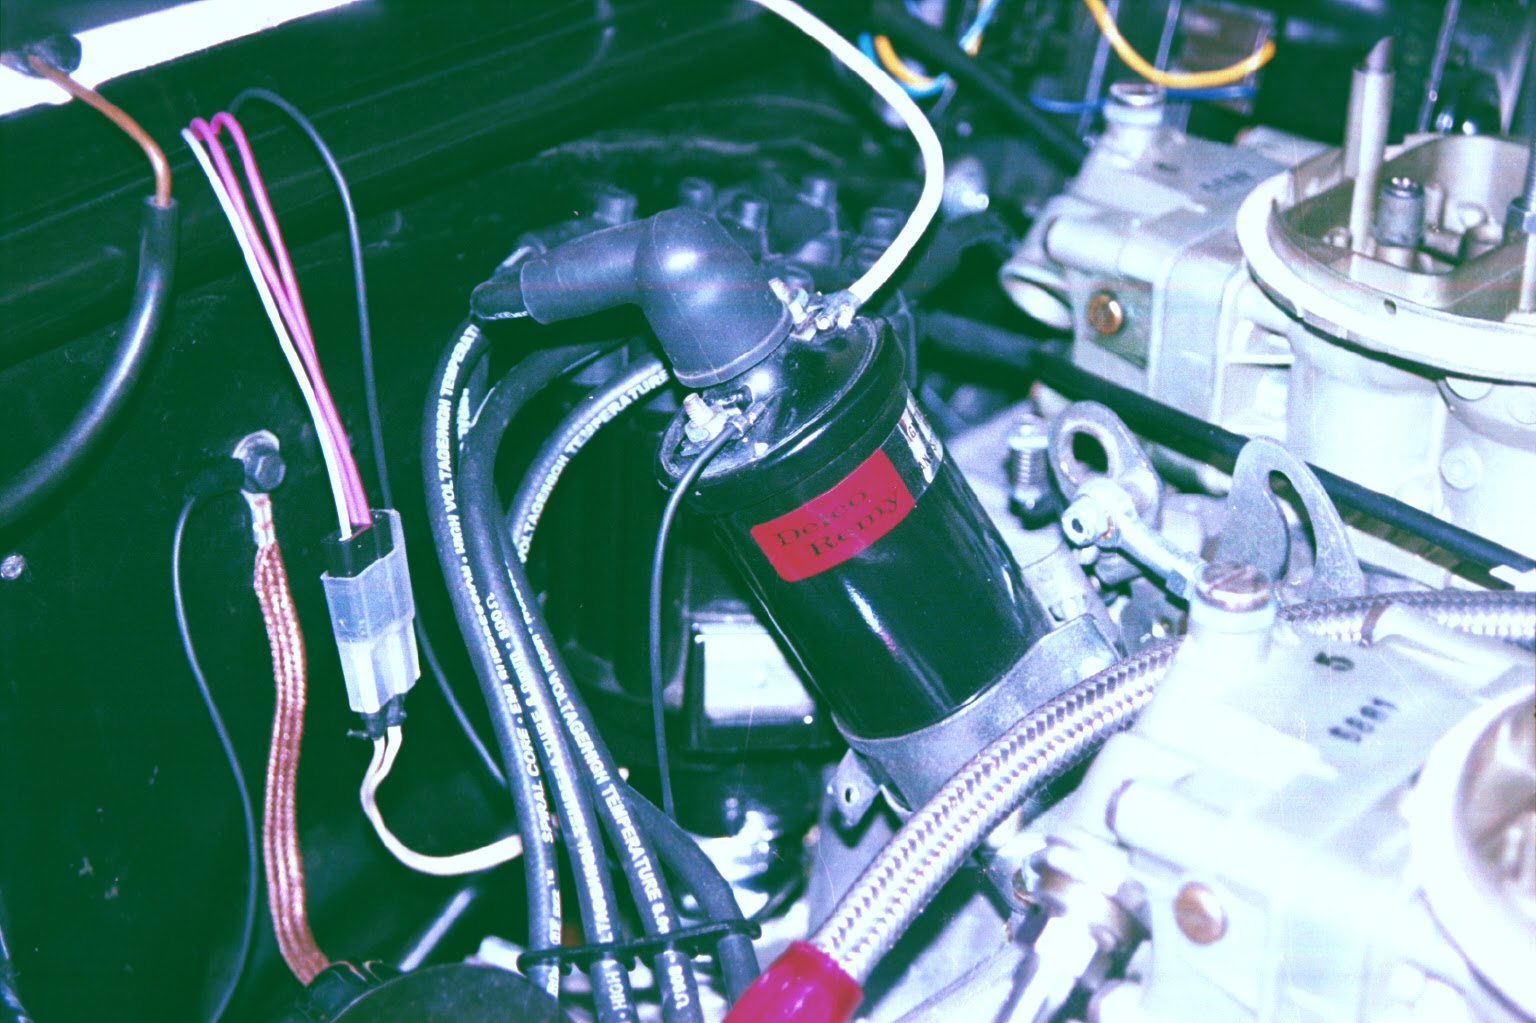 Camaro Transistor Ignition Systems